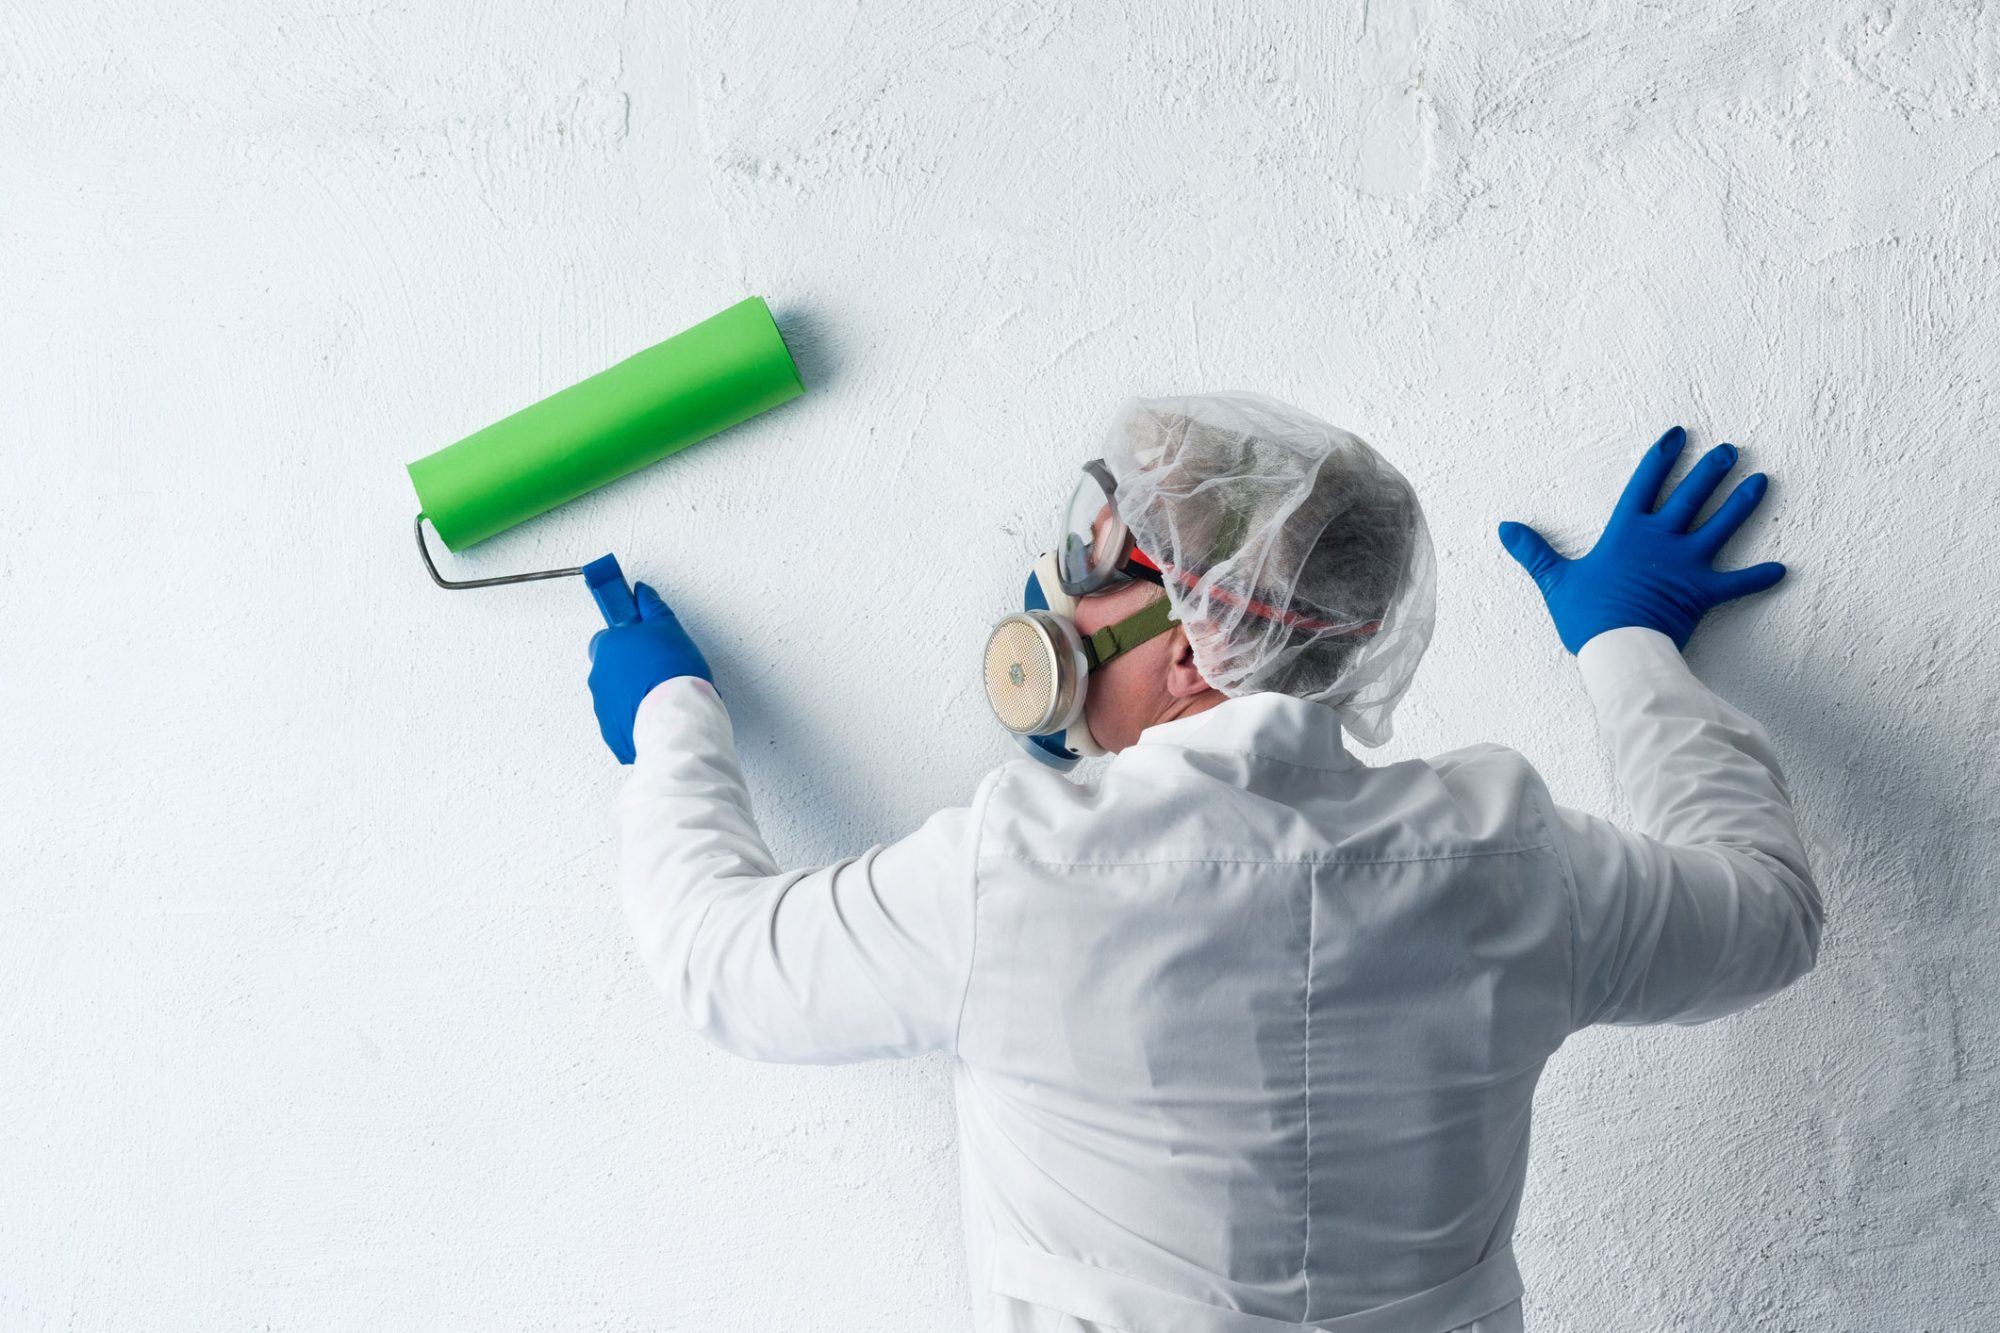 Can Lead Paint From Wall Art Cause Harm